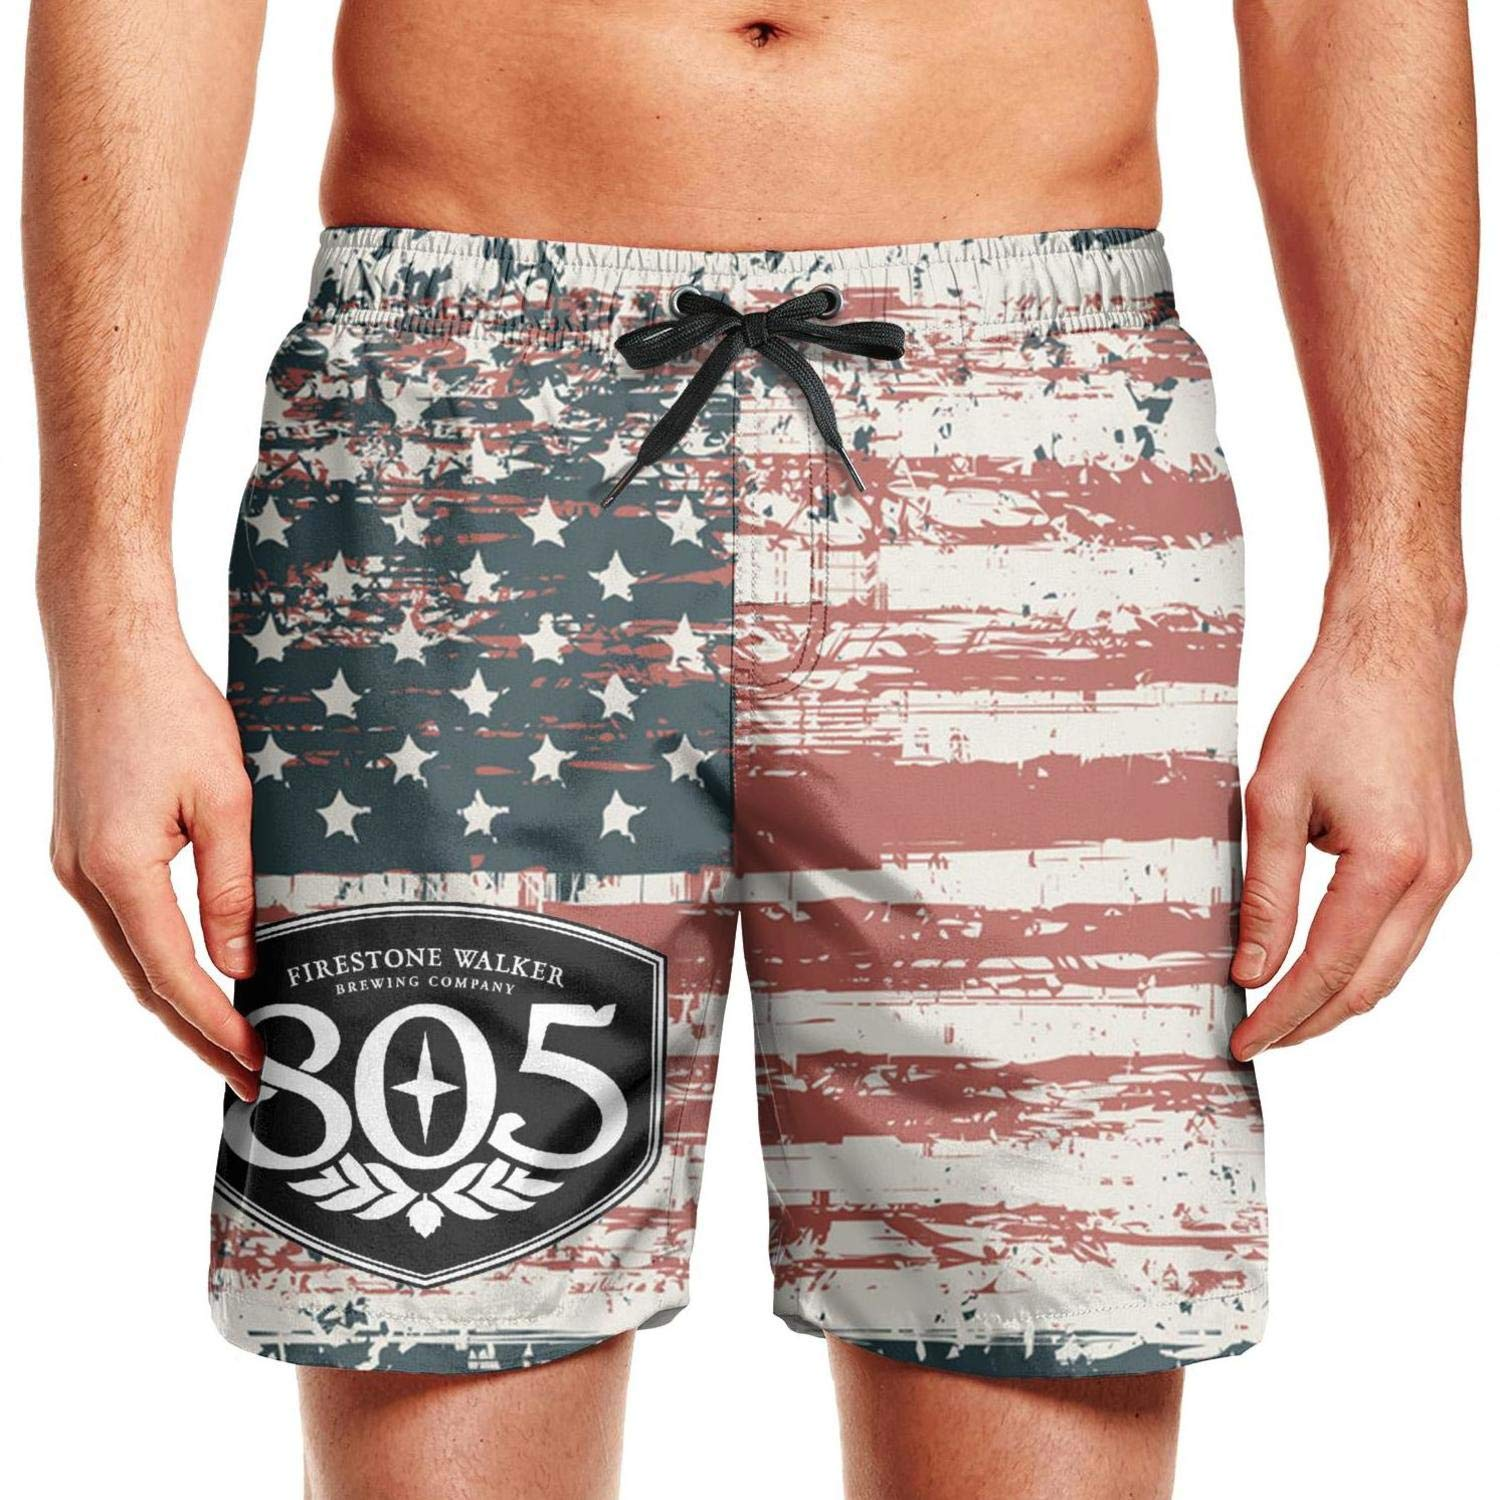 805 Beer Sign Patriotic American Usa Flag July 4th Shorts